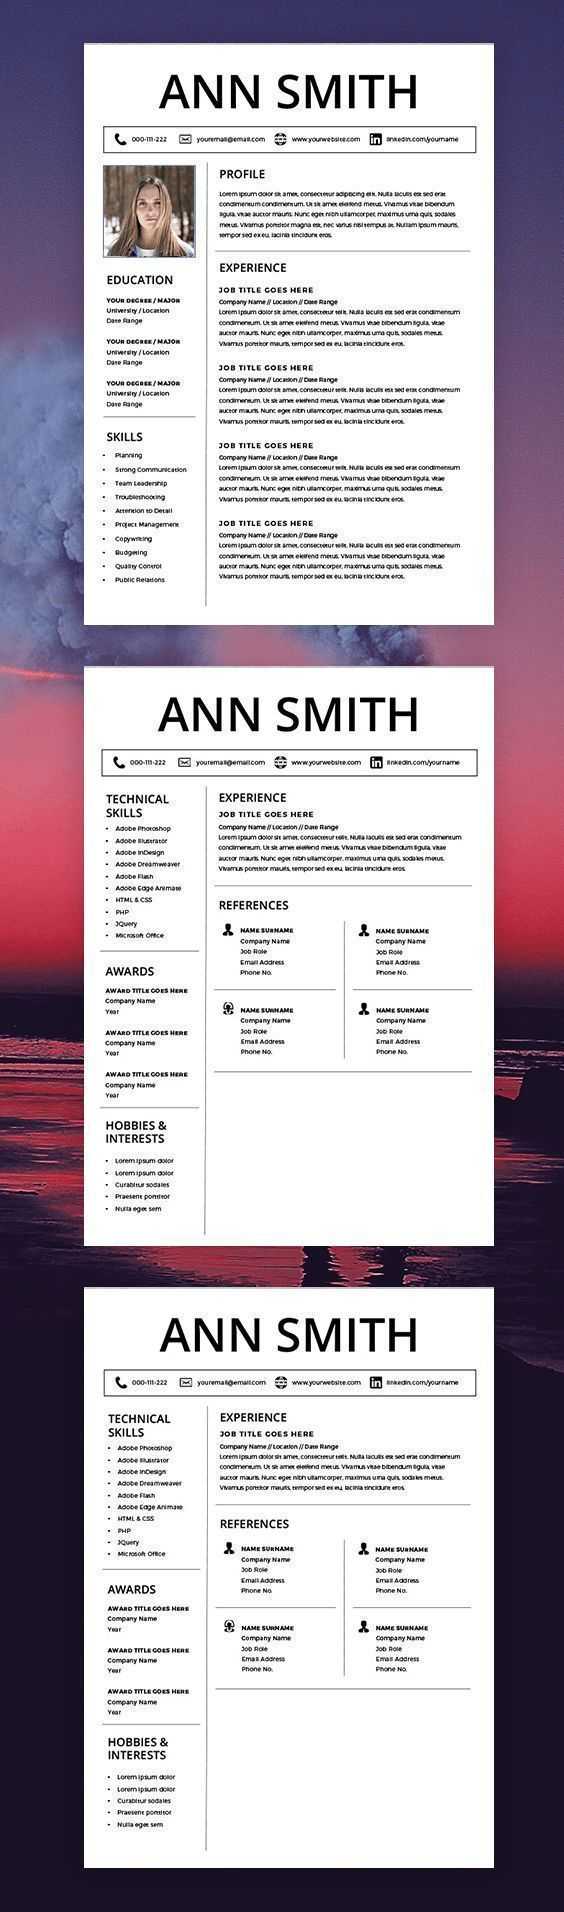 Microsoft Word Resume Template For Mac Entrancing Curriculum Vitae Template  Cv Template  Cover Letter  Ms Word Mac .